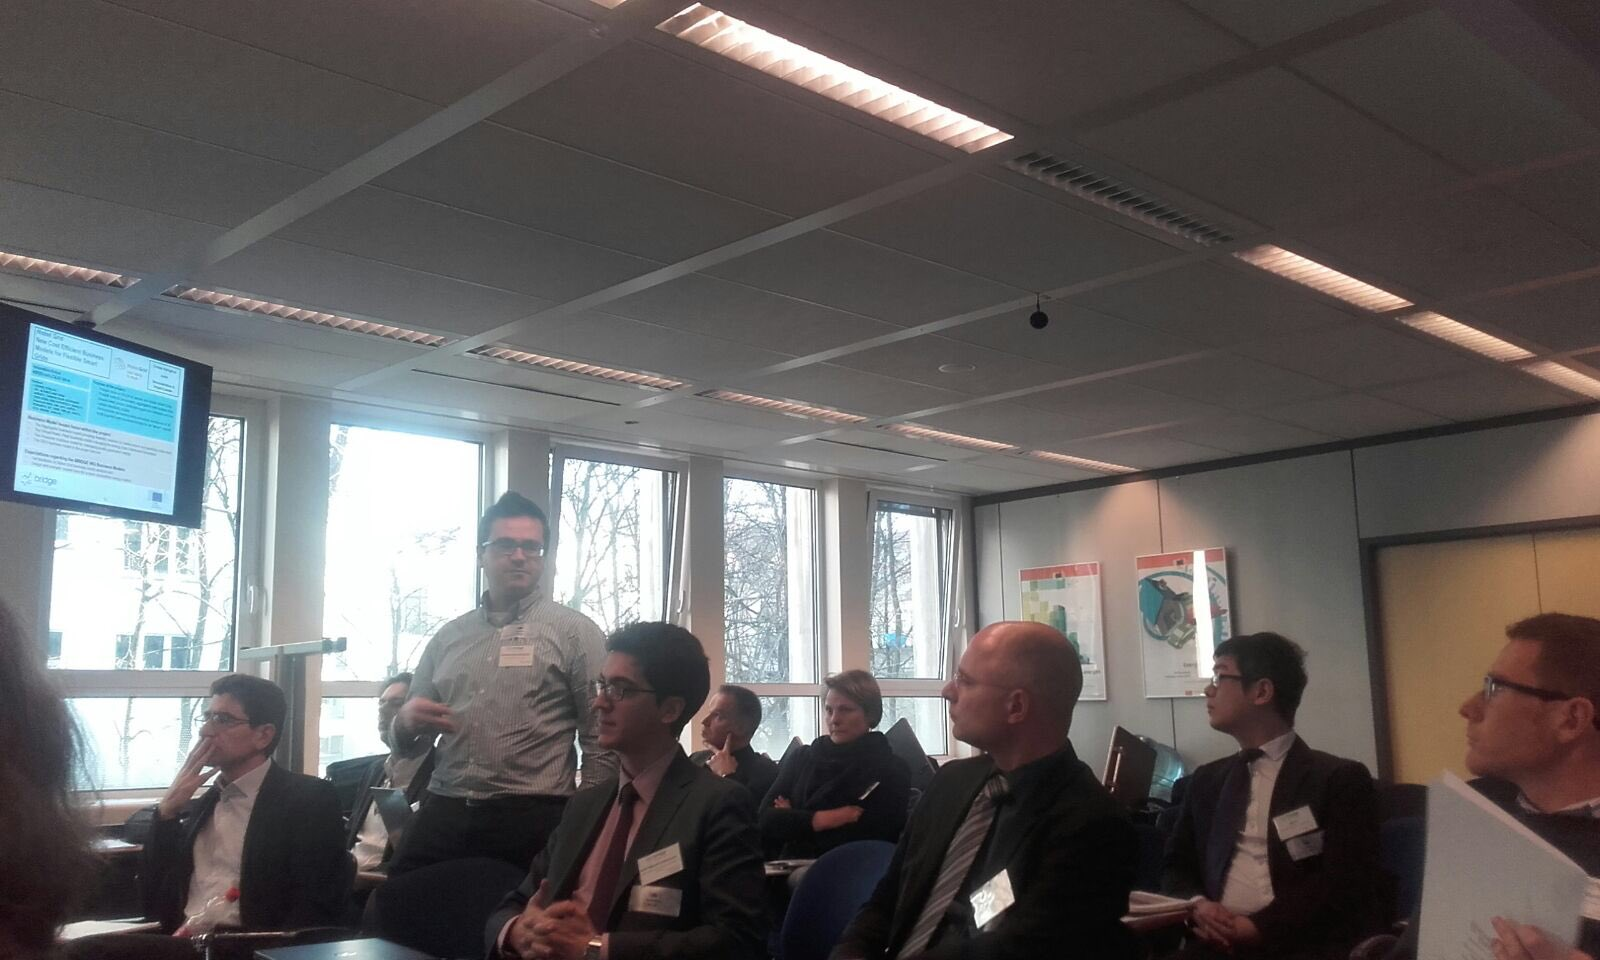 Our partner Costas Kaligoros of @AUEB is presenting @NobelGrid at the Business models working group of #Bridge_EU meeting https://t.co/4wBtnEB1xh